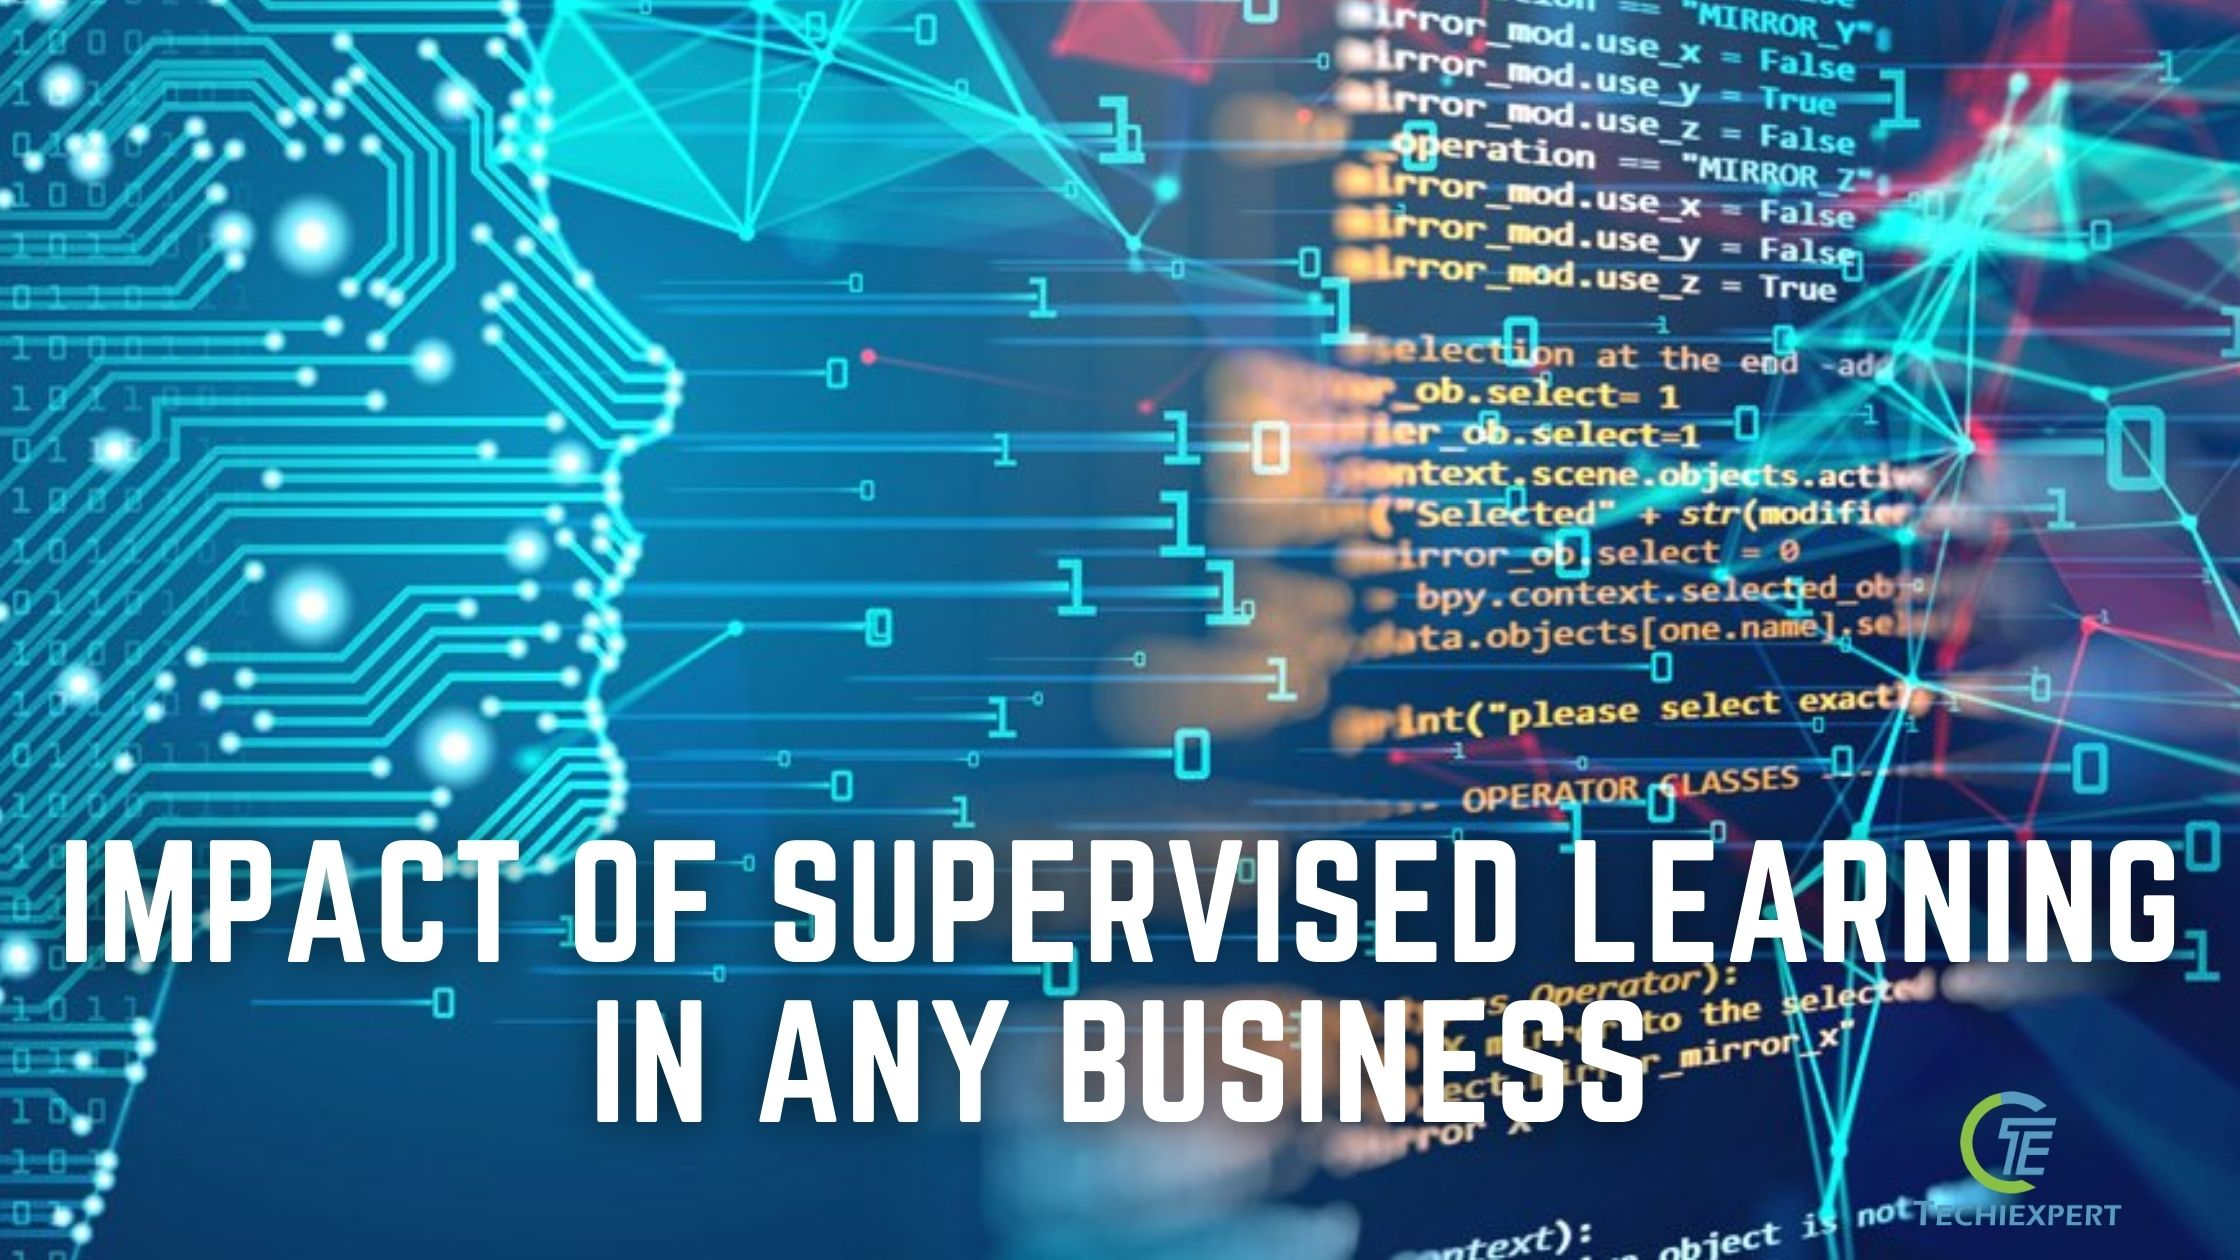 impact of supervised learning in any business